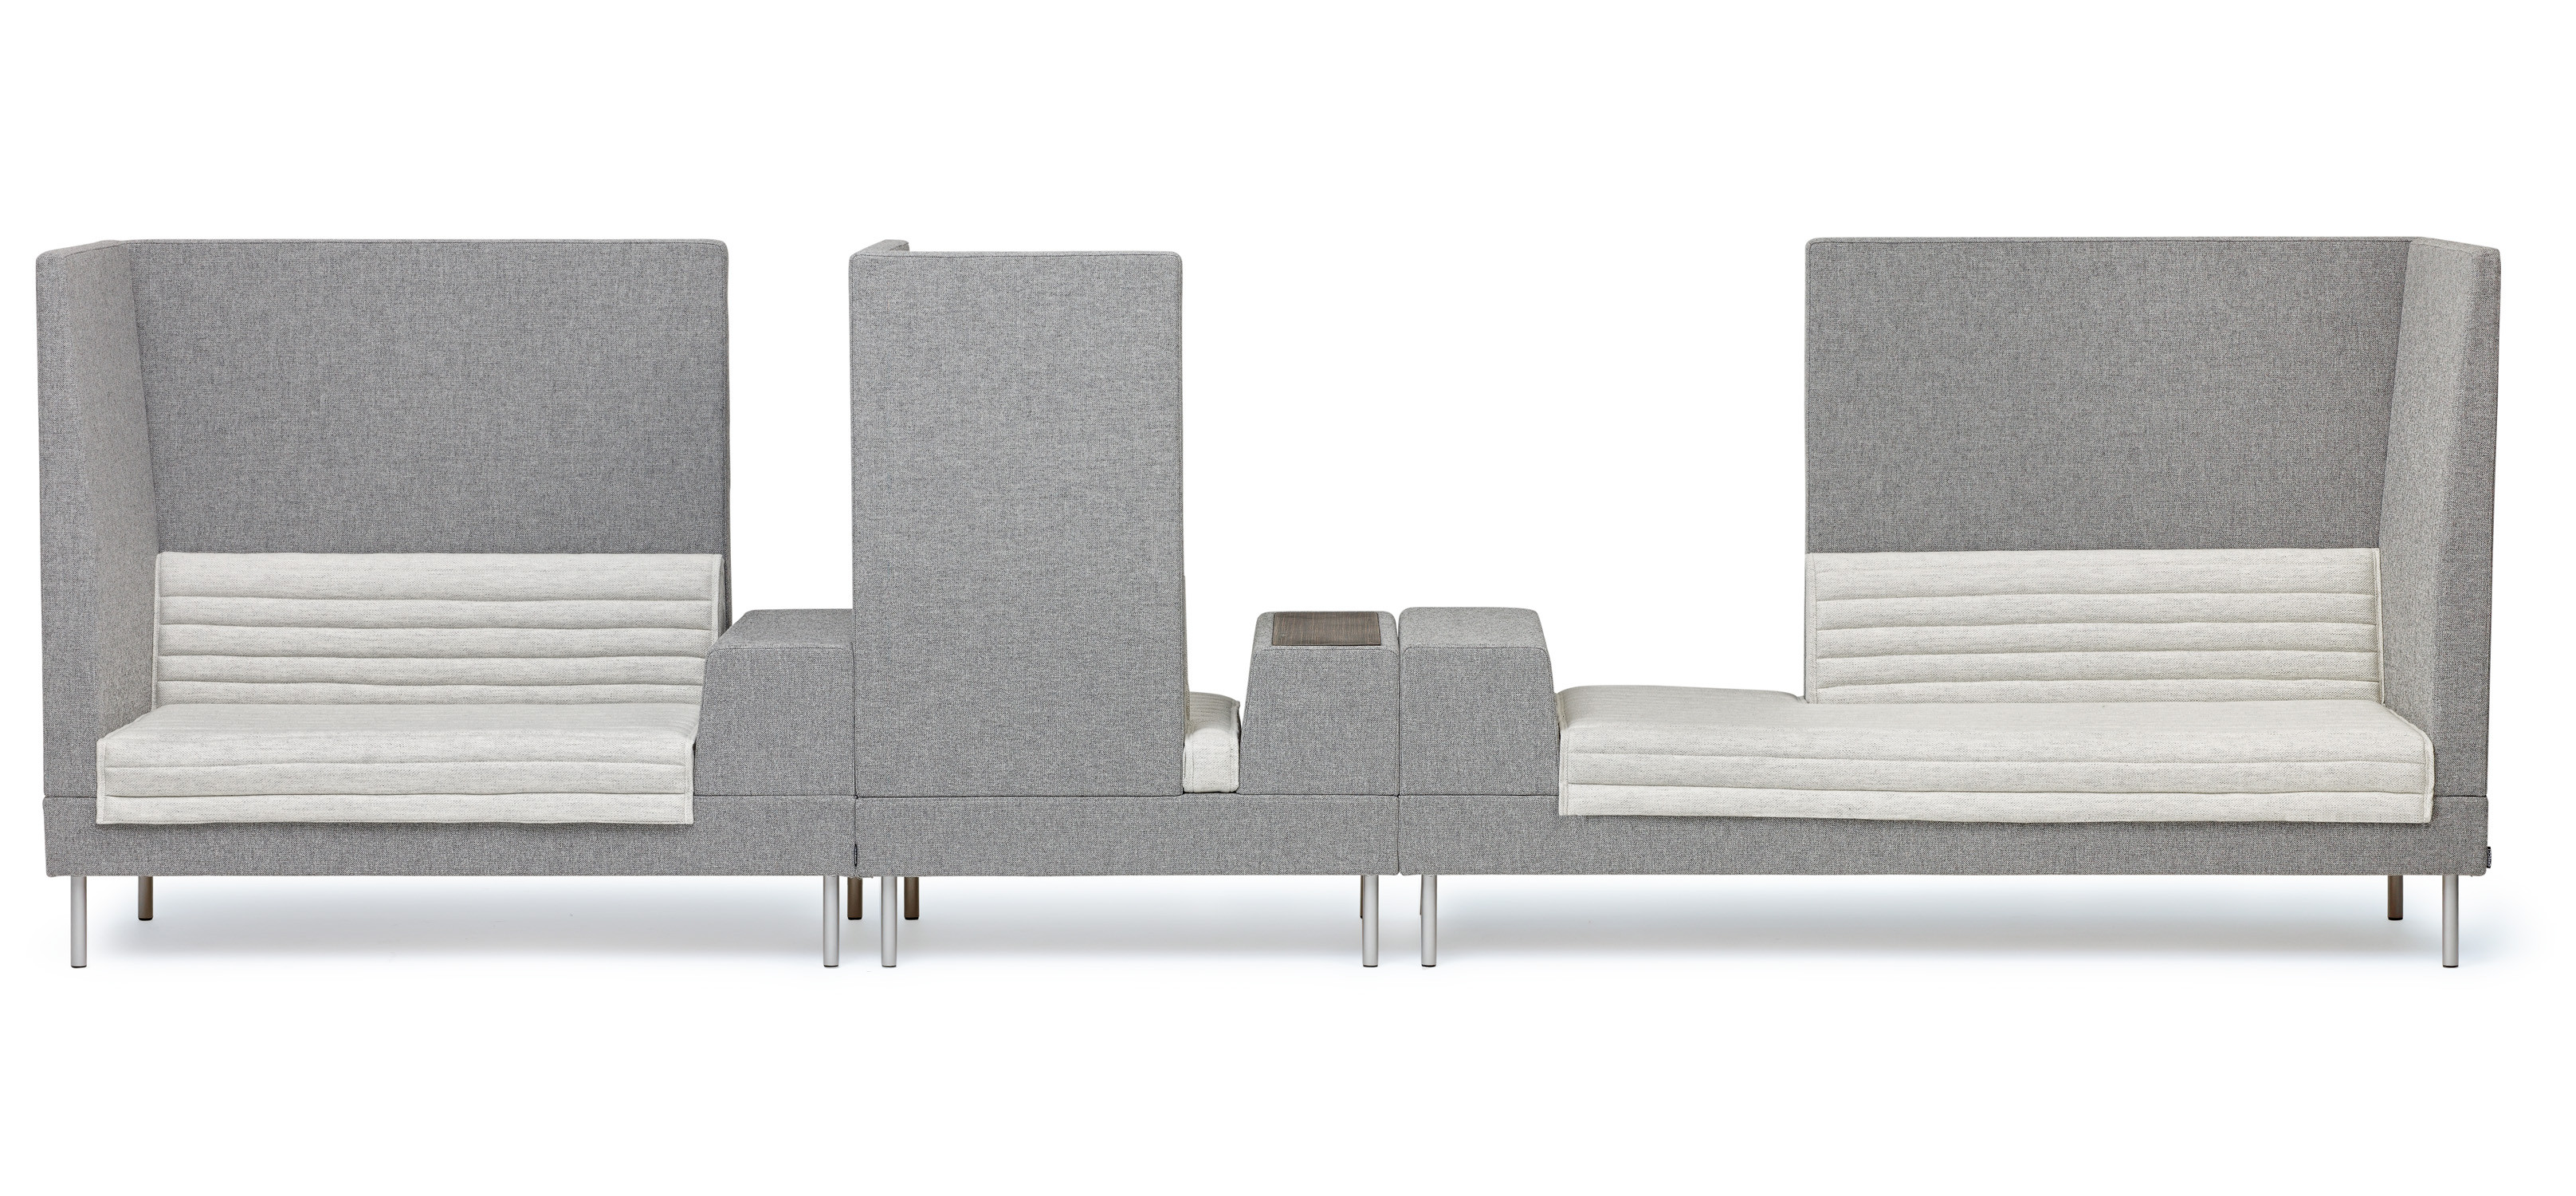 Smallroom Sofa by Offecct Furniture